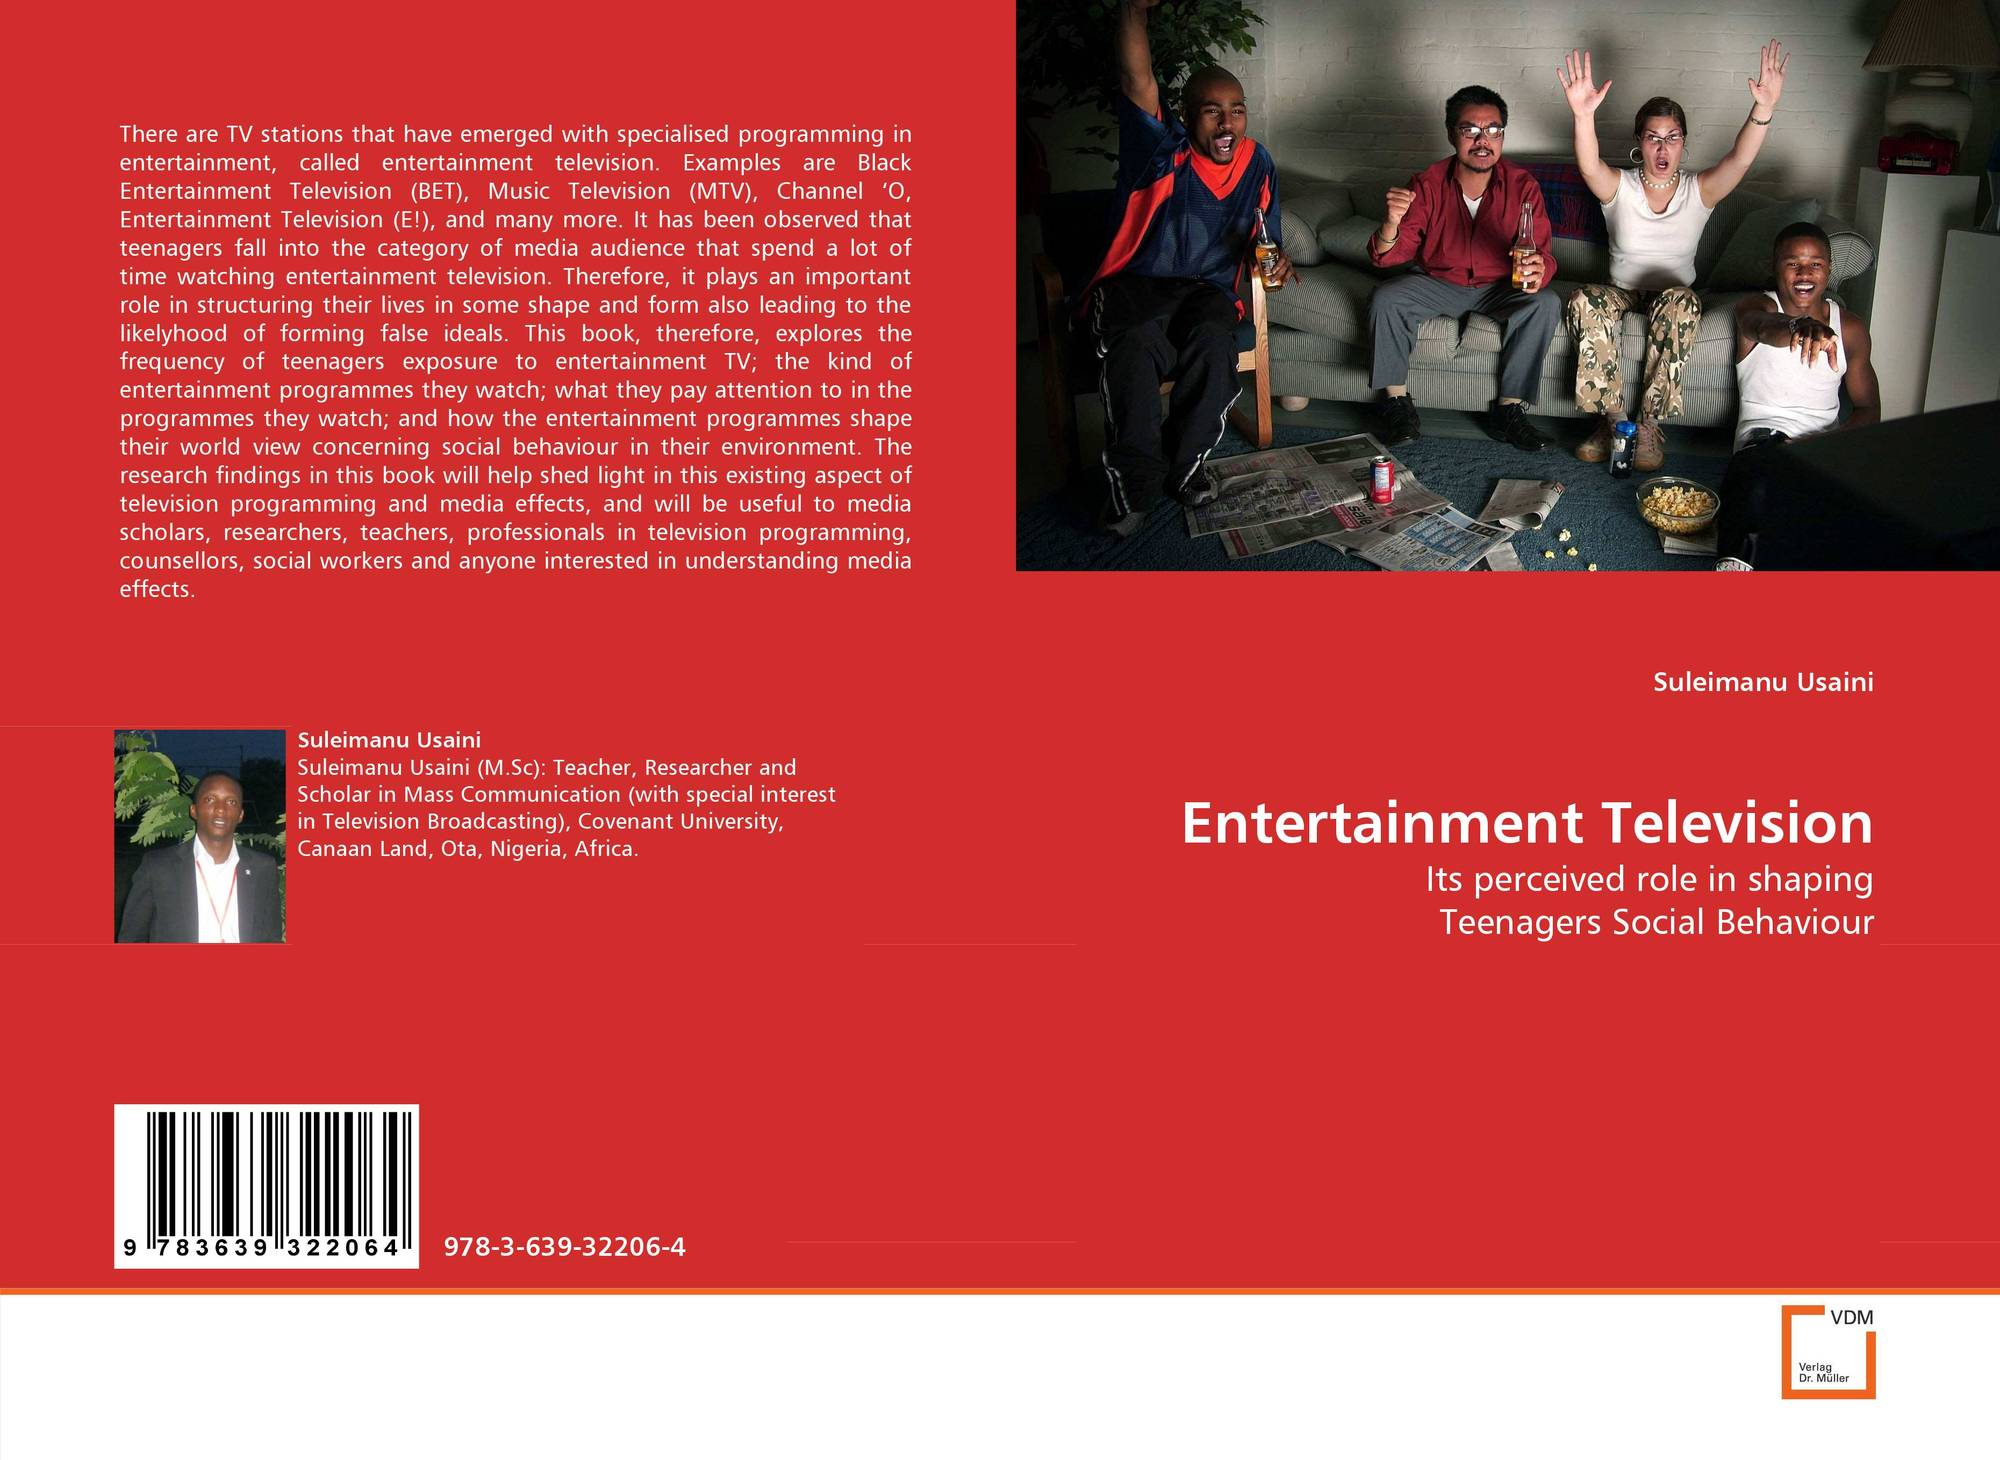 effects of reality tv on teens Sage abernathy effects of reality television on teenage girls thesis statement: reality television shows have negative effects on teenage girls because of how they represent behavior, body image and construct false social reality expectations.